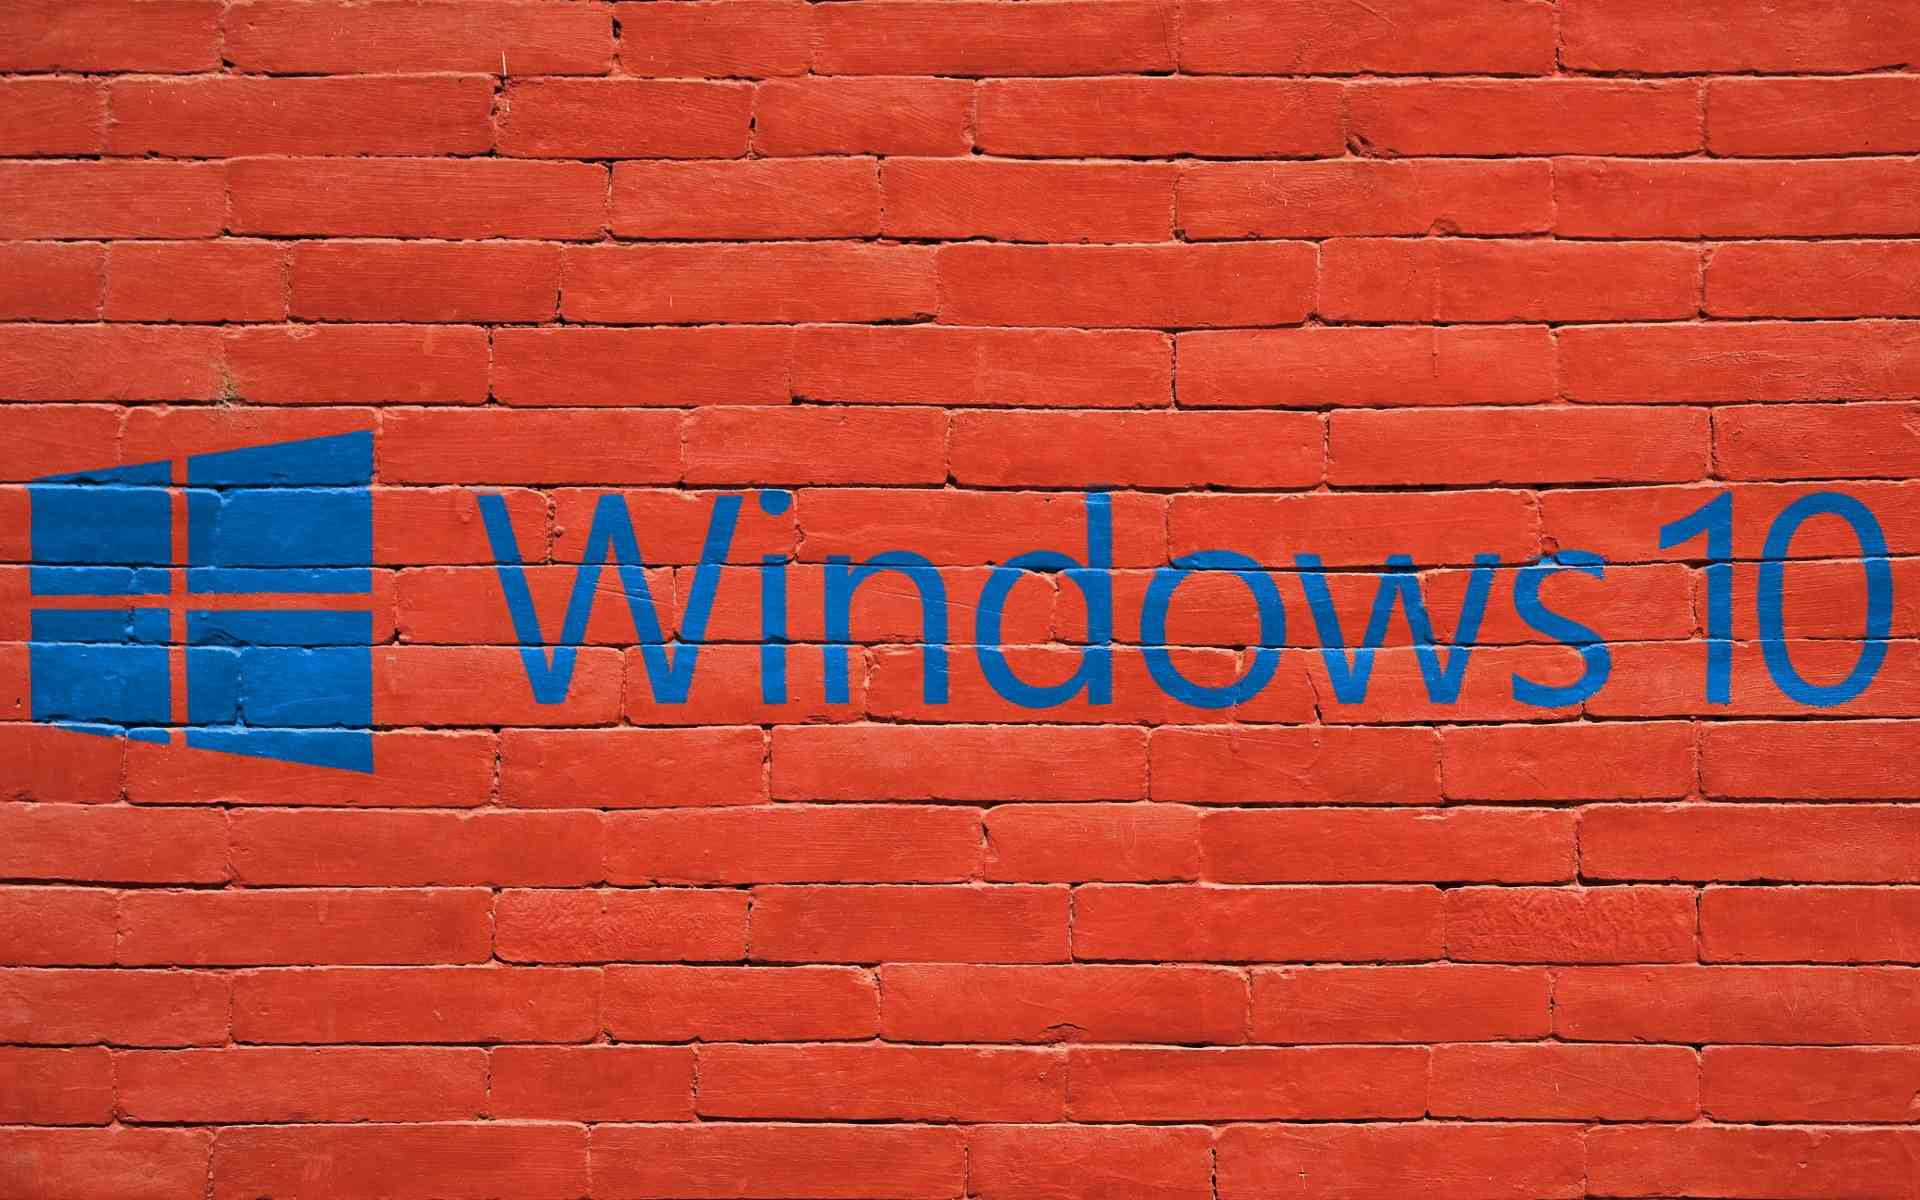 Windows 10 logo painted on a red brick wall.